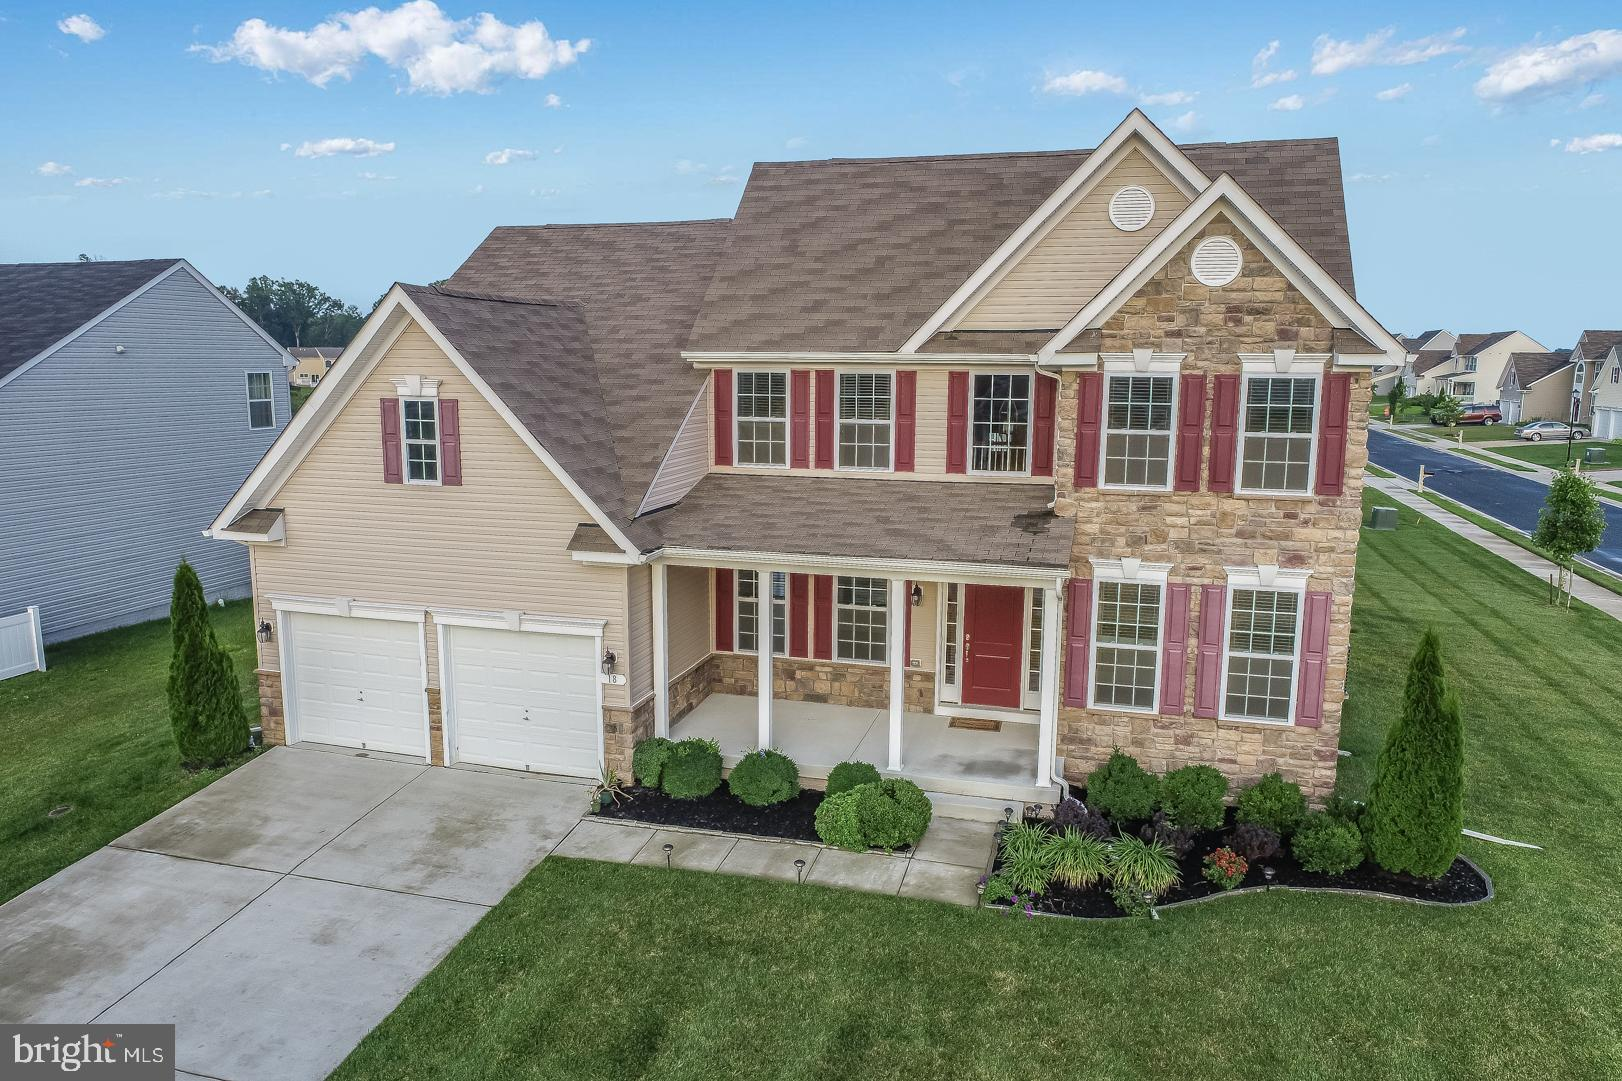 """Don't miss this remarkable home in the desirable community of The Reserve at Chestnut Ridge. The house was built in 2017 and has many wish-list features: gleaming hardwood floors, recessed lights, custom blinds, stone accent in the front of home, inviting porch, and a walk-out basement. It offers an expansive floor plan with 4 bedrooms and 3.5 bathrooms, a stunning 2-story family room, formal dining room, and an office with French doors. The kitchen has custom quality 42"""" maple cabinets that provide ample space, a central island, and a large walk-in pantry; it opens to the Family room and a beautiful sunroom overlooking nice and open back yard.  The main bedroom suite is conveniently situated on the first floor and offers a generously-sized bathroom,  double vanity, and a walk-in closet. The walk-out basement is finished and features a spacious recreation room, a den with a kitchenette, and additional bathroom - it's perfect for in-laws, guests, and entertaining. The house is nestled on a corner lot with a lush lawn, beautiful landscaping, and a sprinkler system. Freshly painted, the home is simply waiting for its new owners! The excellent location makes this home even more attractive; it is a 5 minute drive to Rt. 1, a 10 minute drive to Dover Air Force base, and a 40 minute drive to the beaches, easy commute to shopping, restaurants, and schools. The Reserve at Chestnut Ridge is a flourishing community that offers walking trails, a Clubhouse featuring a gym, party rooms, TV lounge, 2 in-ground pools, and a fenced-in playground. This is a truly must see home! Call the listing agent to schedule a tour."""